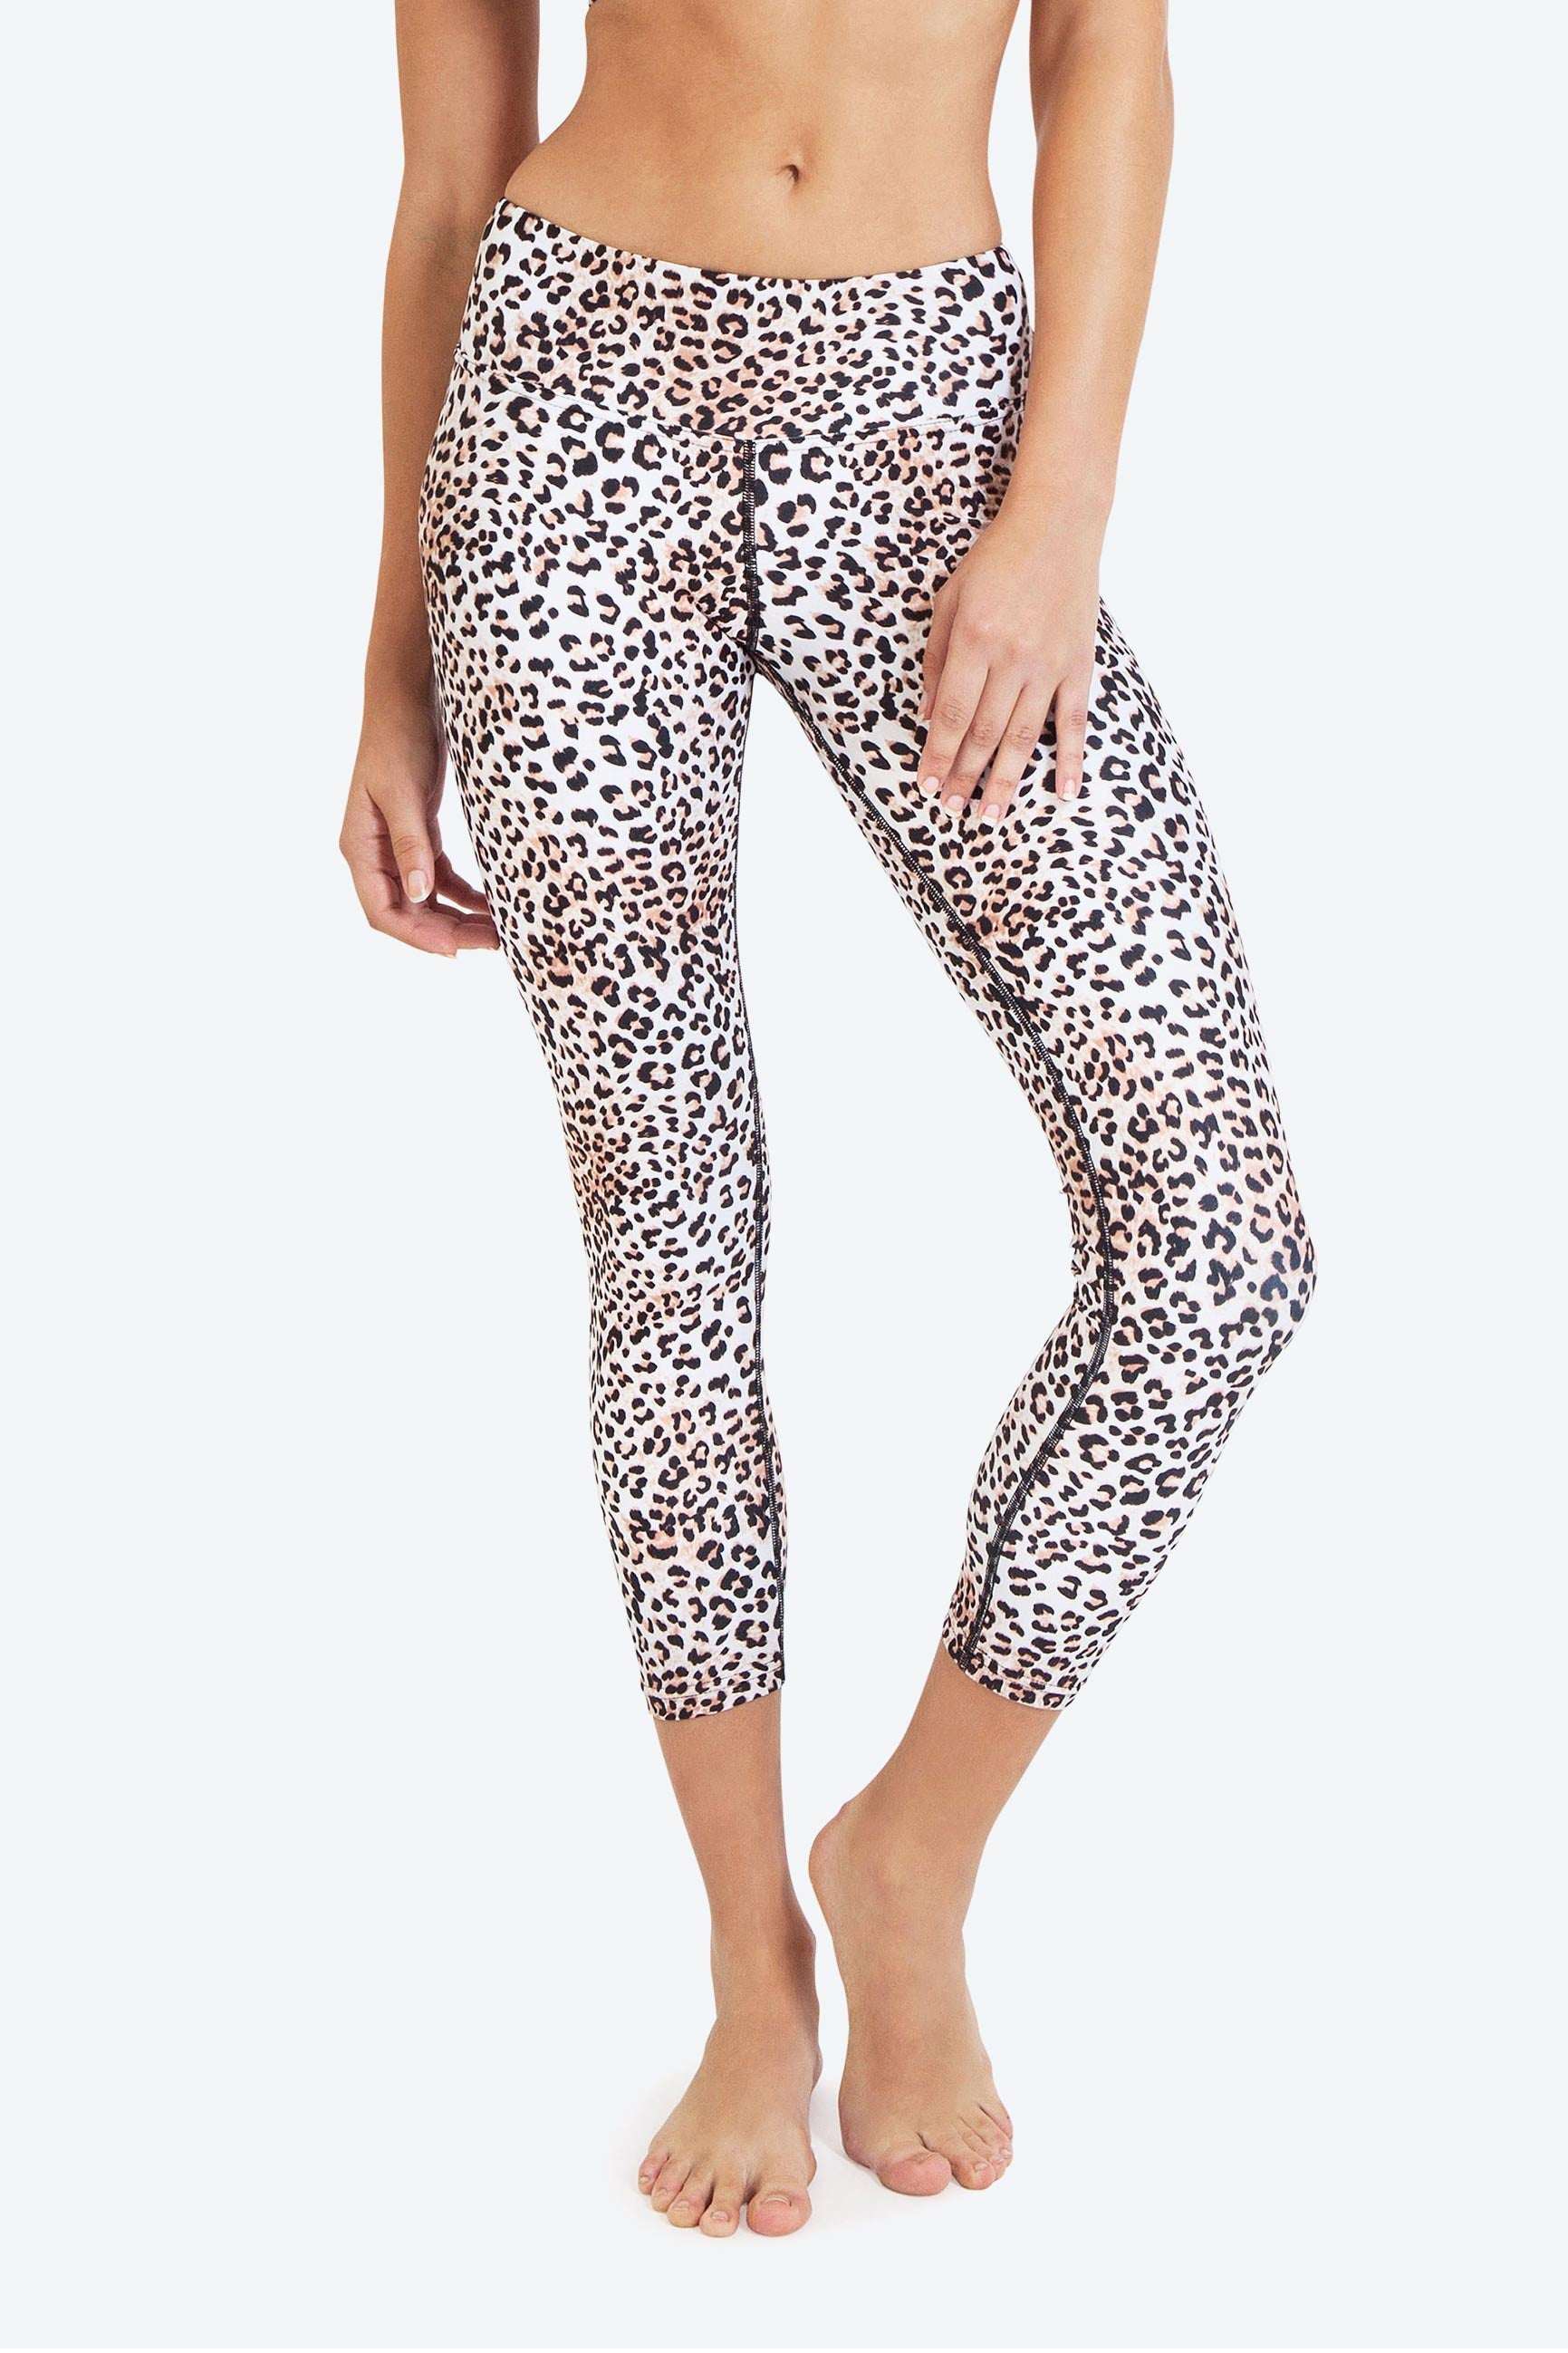 abba5c9ce64cf Wild Thing High Waist Printed Yoga Legging - 7/8 Length | Women's ...